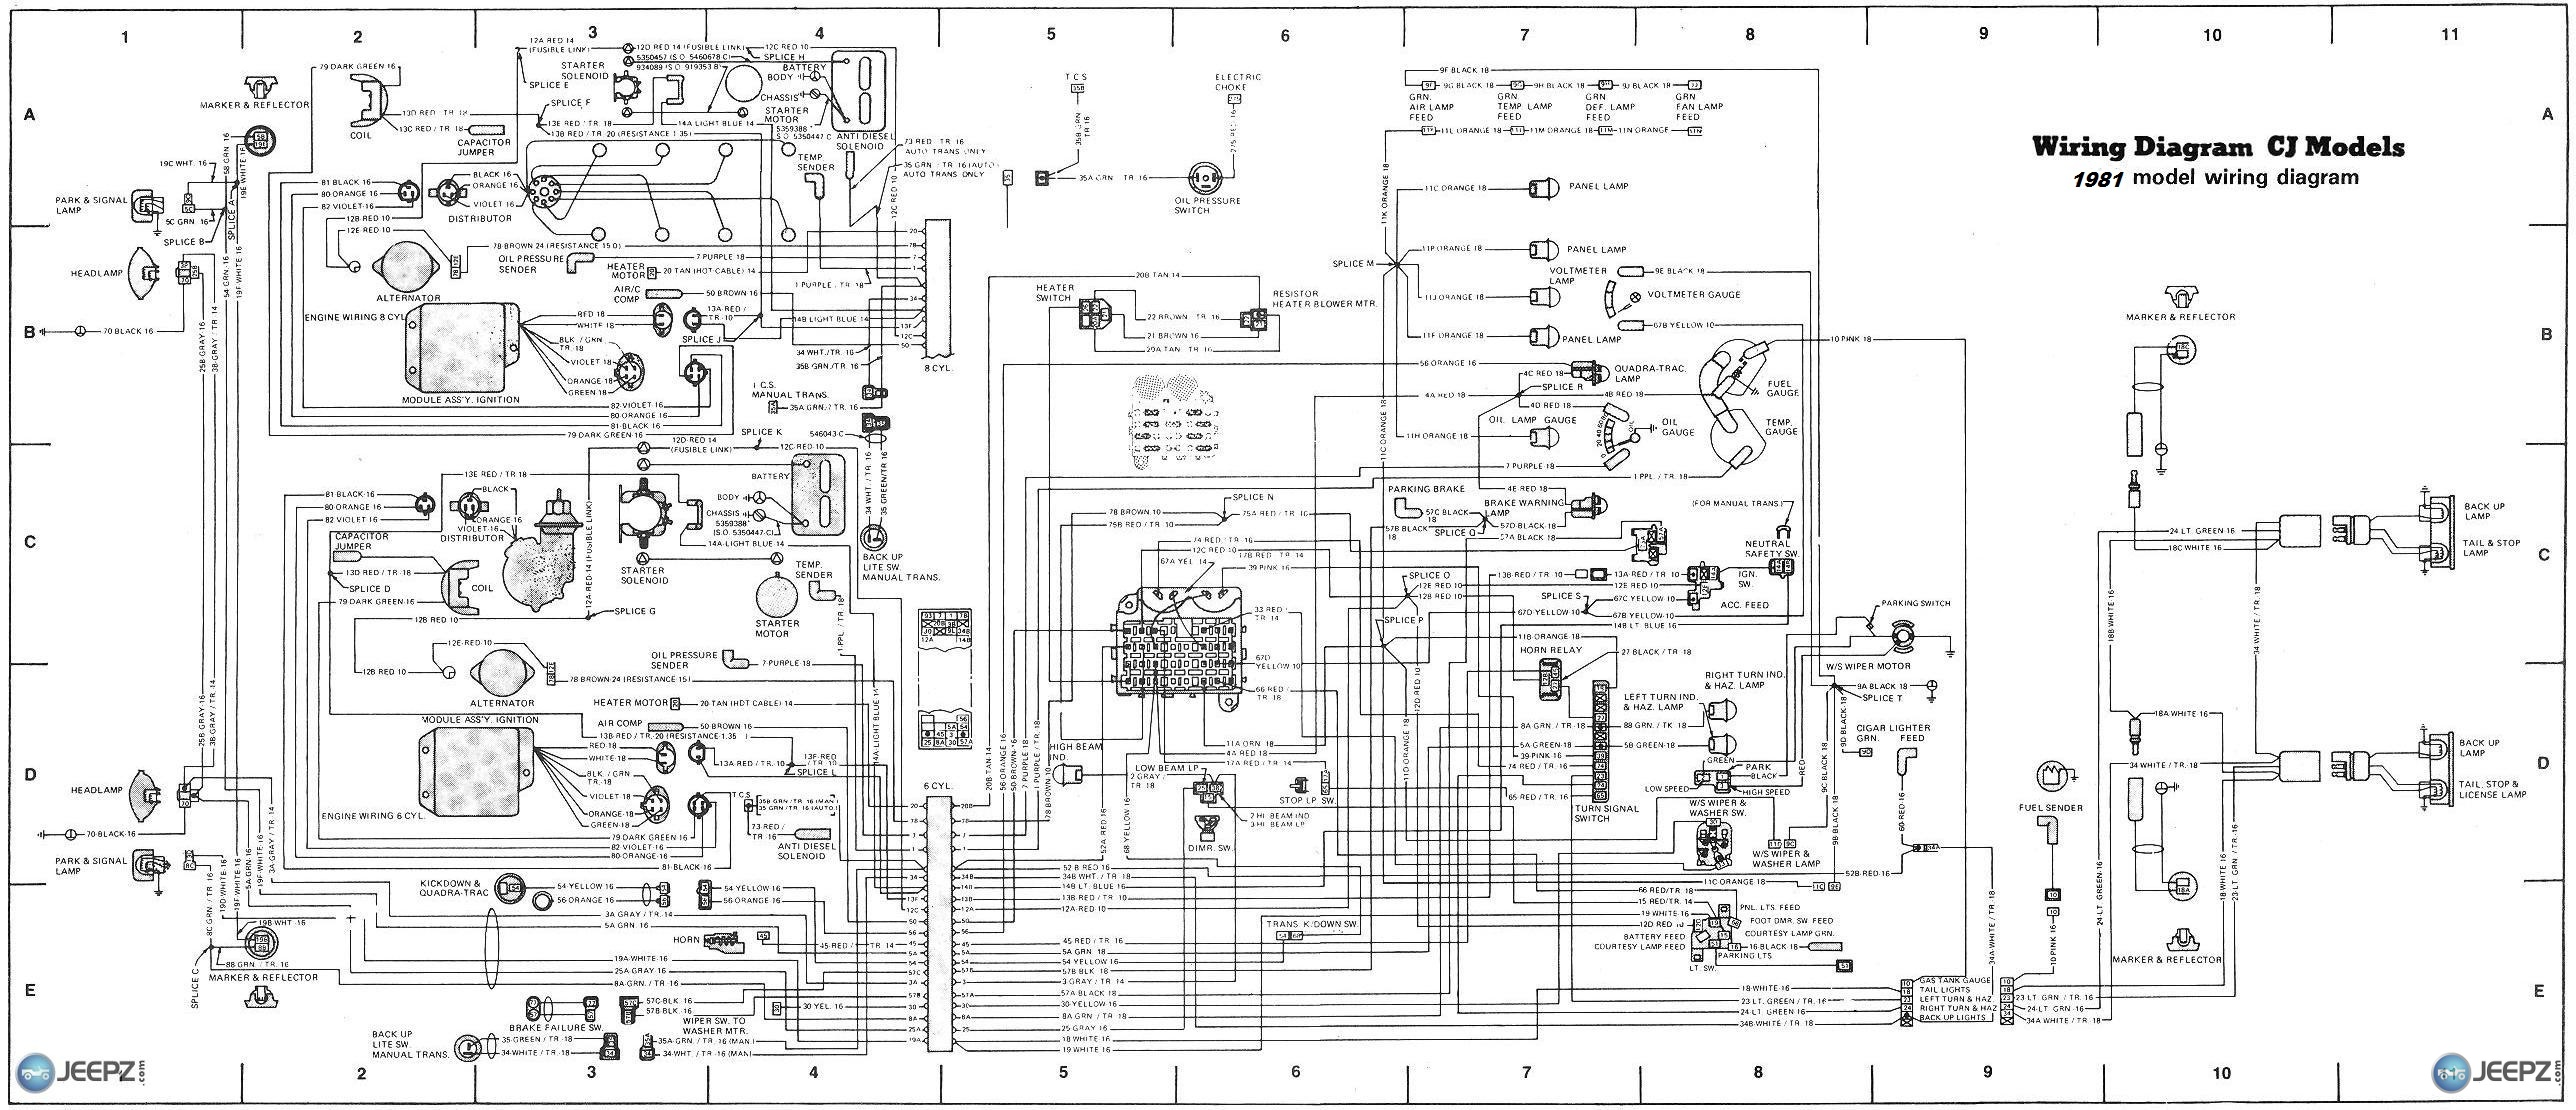 1980 jeep cj7 wiring diagram auto electrical wiring diagram range rover trailer wiring diagram 1980 jeep cj7 wiring diagram gallery